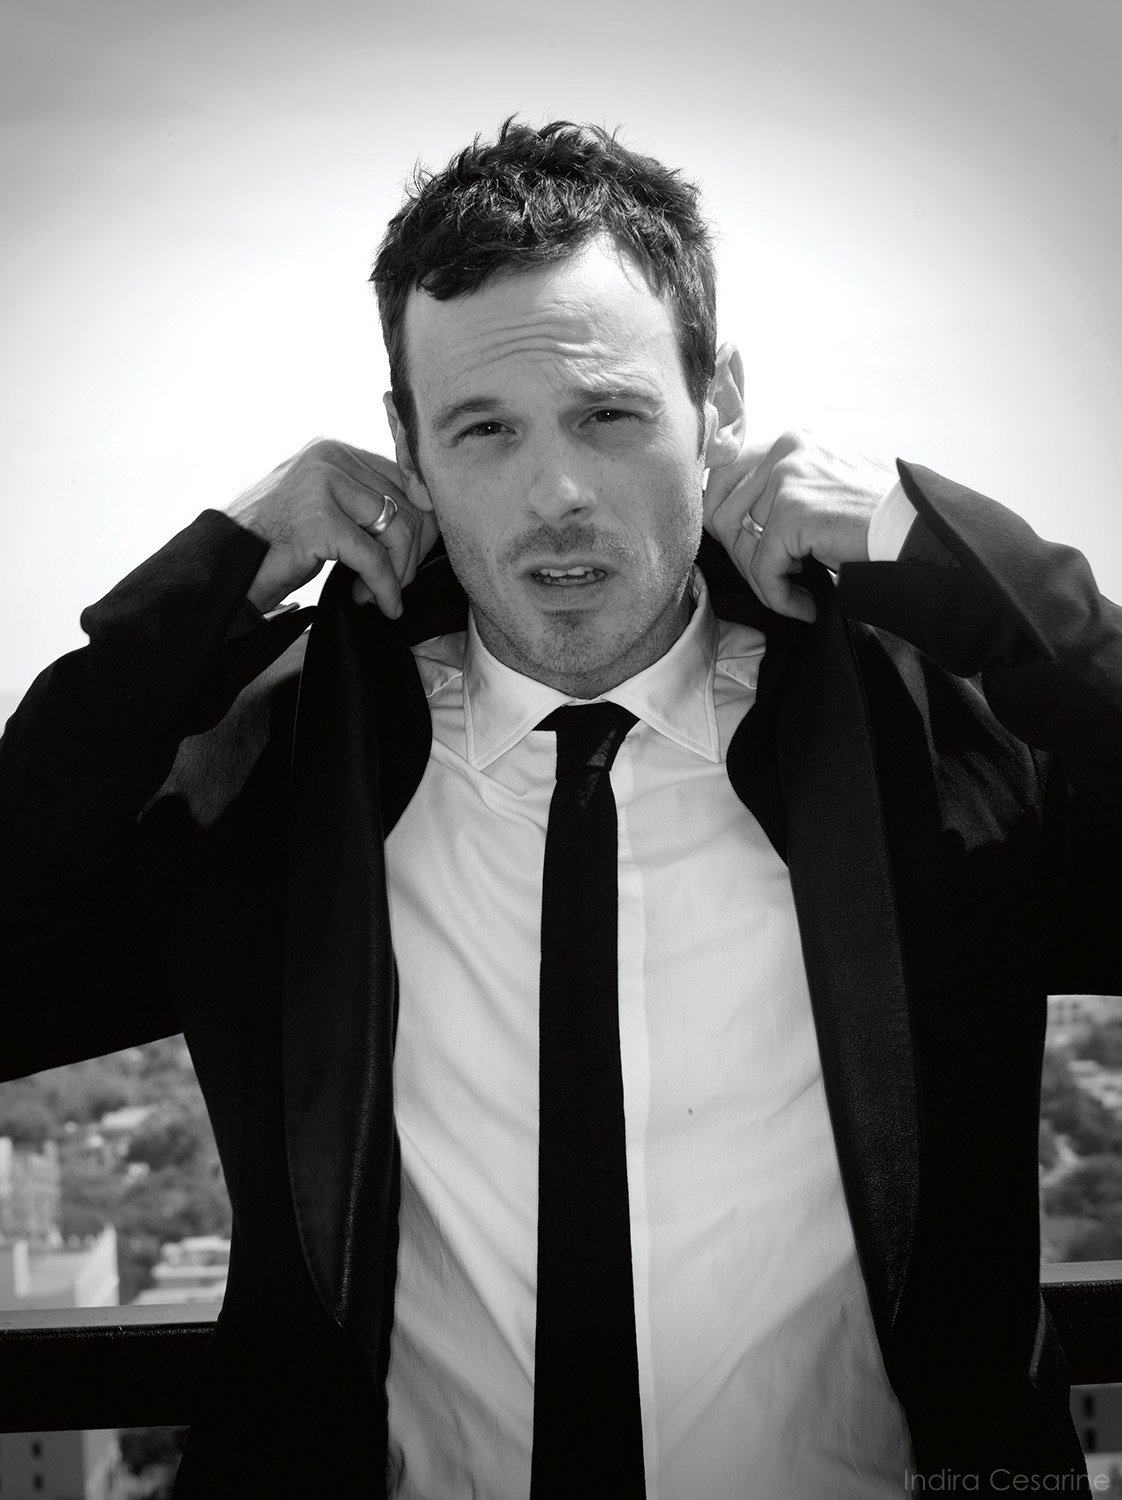 Scoot-McNairy-Photography-by-Indira-Cesarine-001.jpg